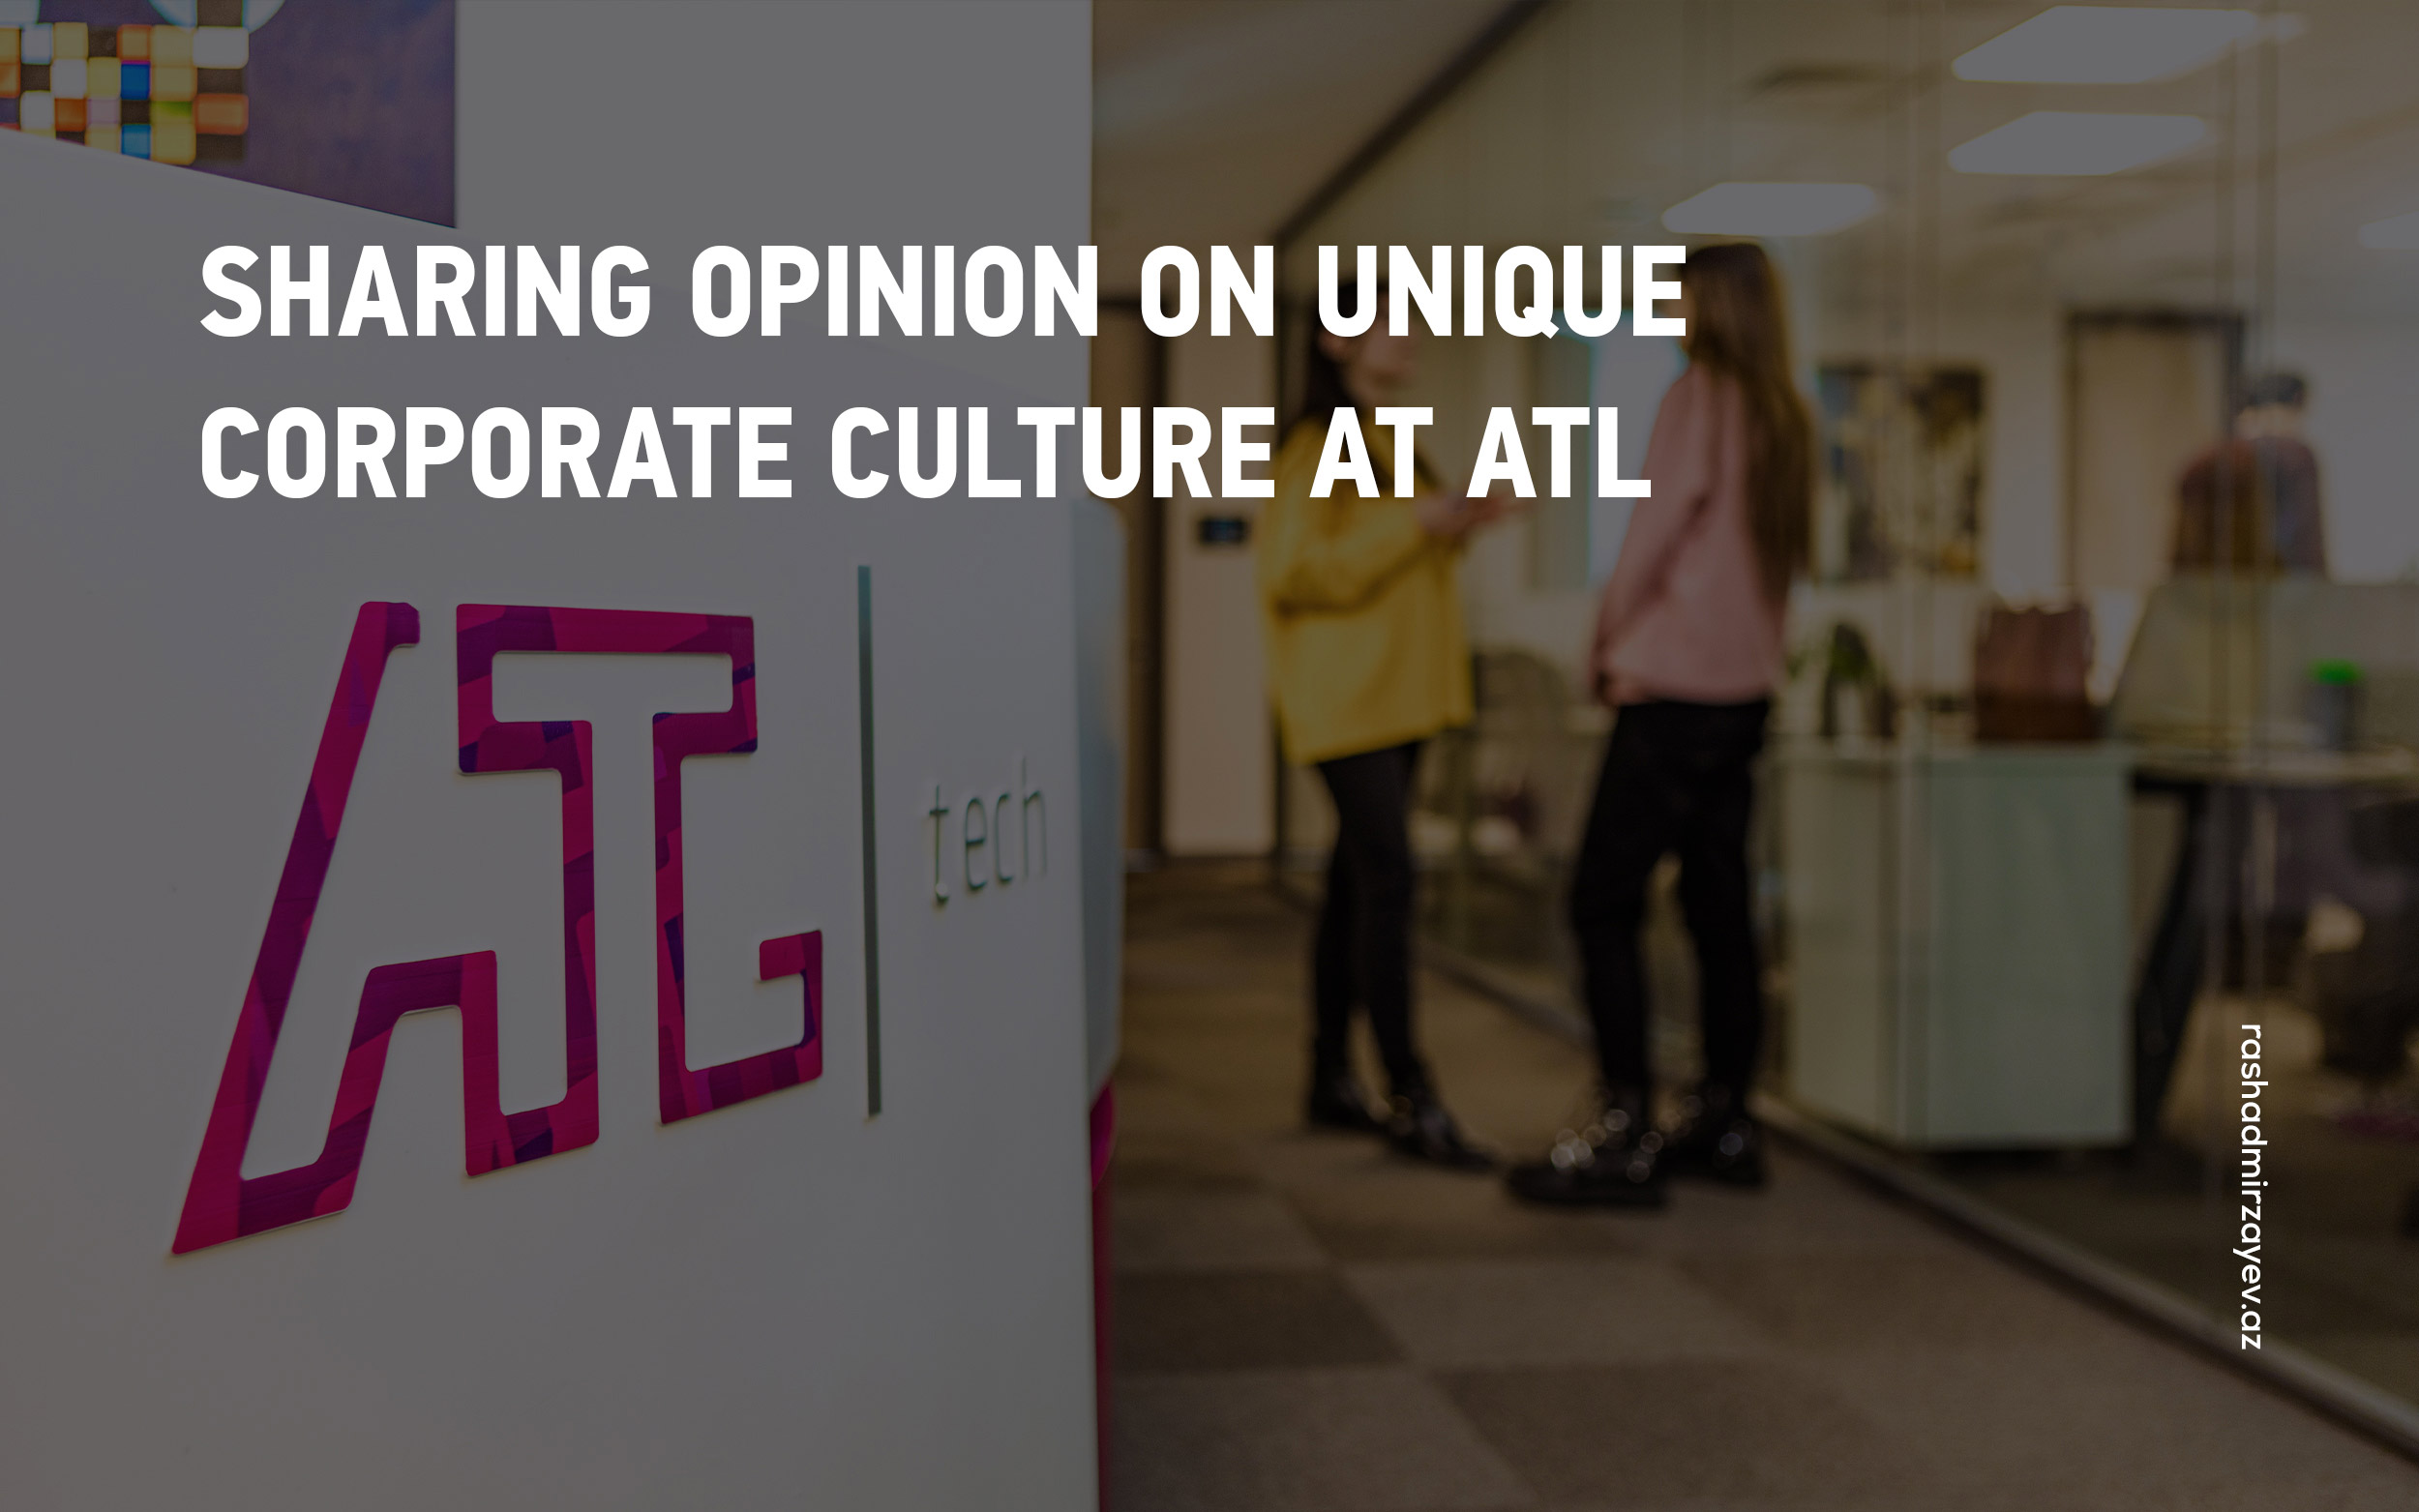 Sharing-opinion-on-unique-corporate-culture-at-ATL